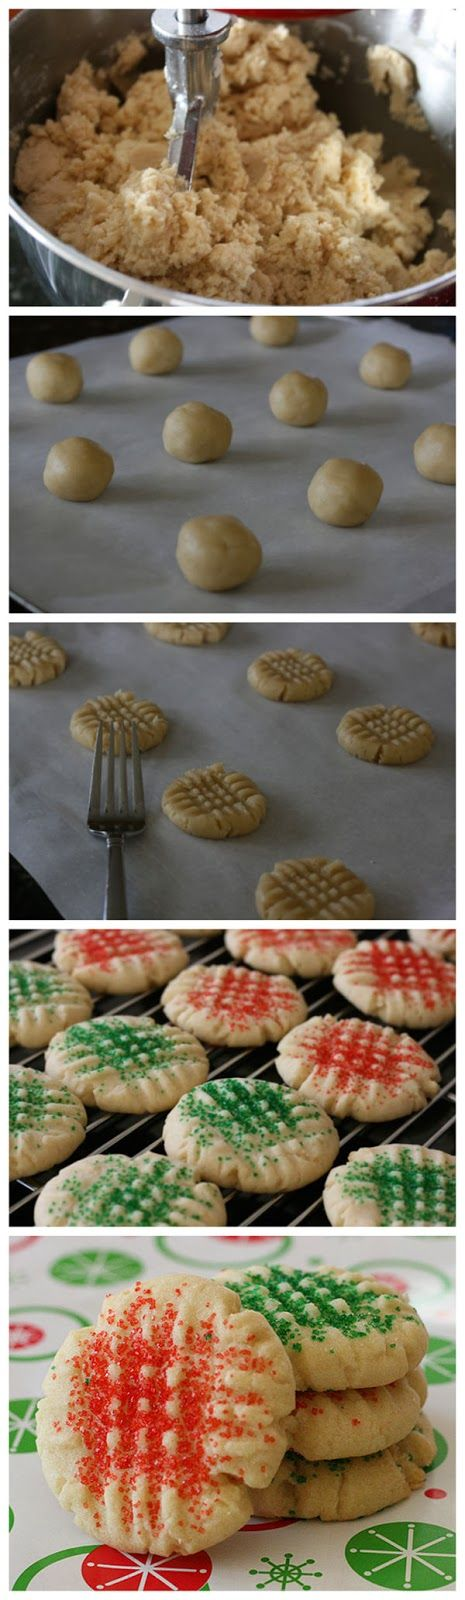 World's Best Sugar Cookies - My mom would make them every year along with Christmas Fudge to pass out to our friends and neighbors at Christ...